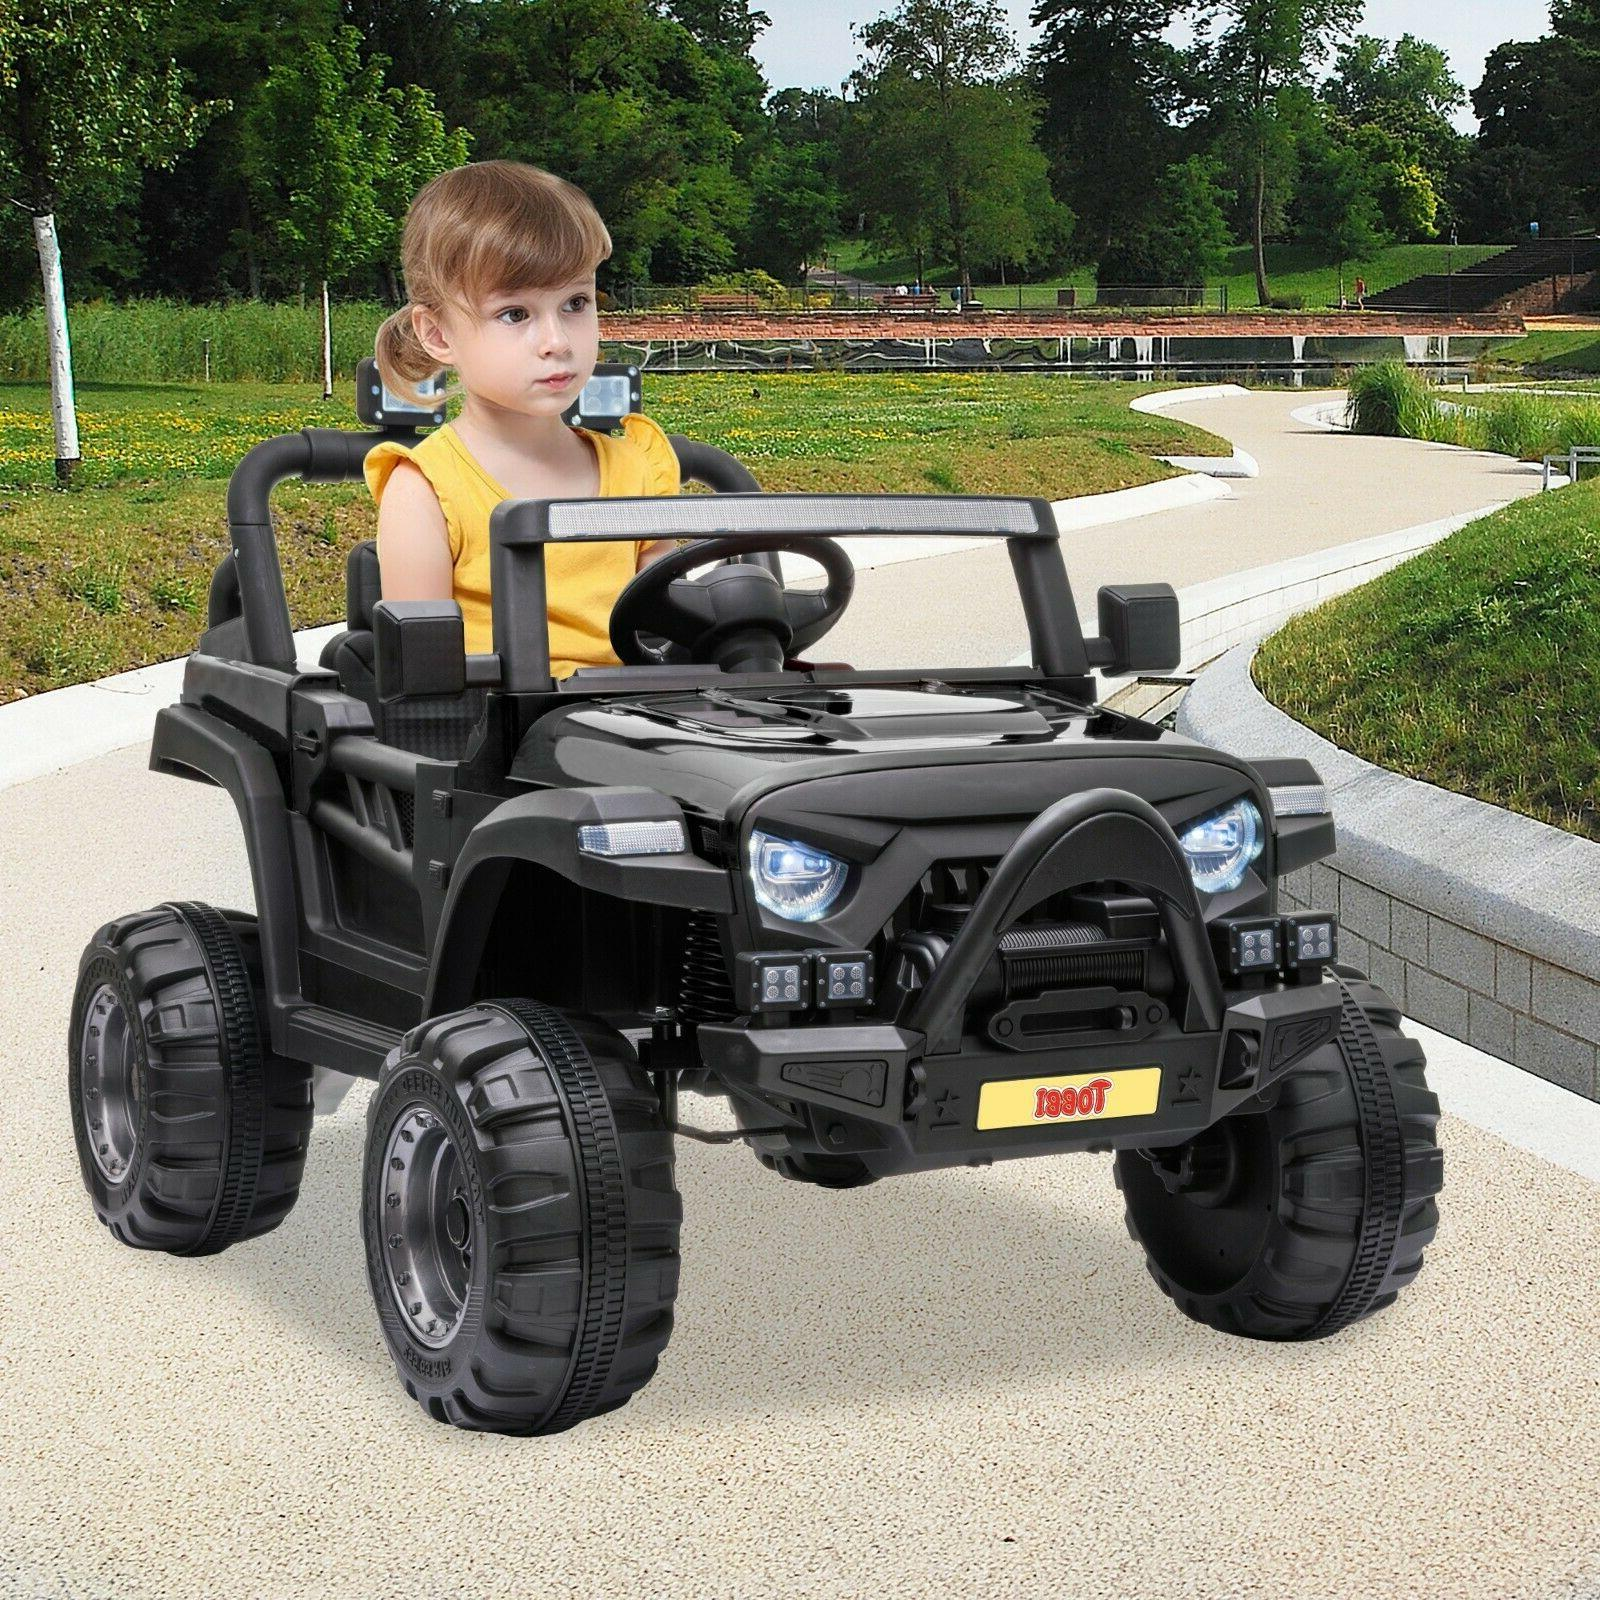 12V On Truck Remote Control Battery Powered Toy Car